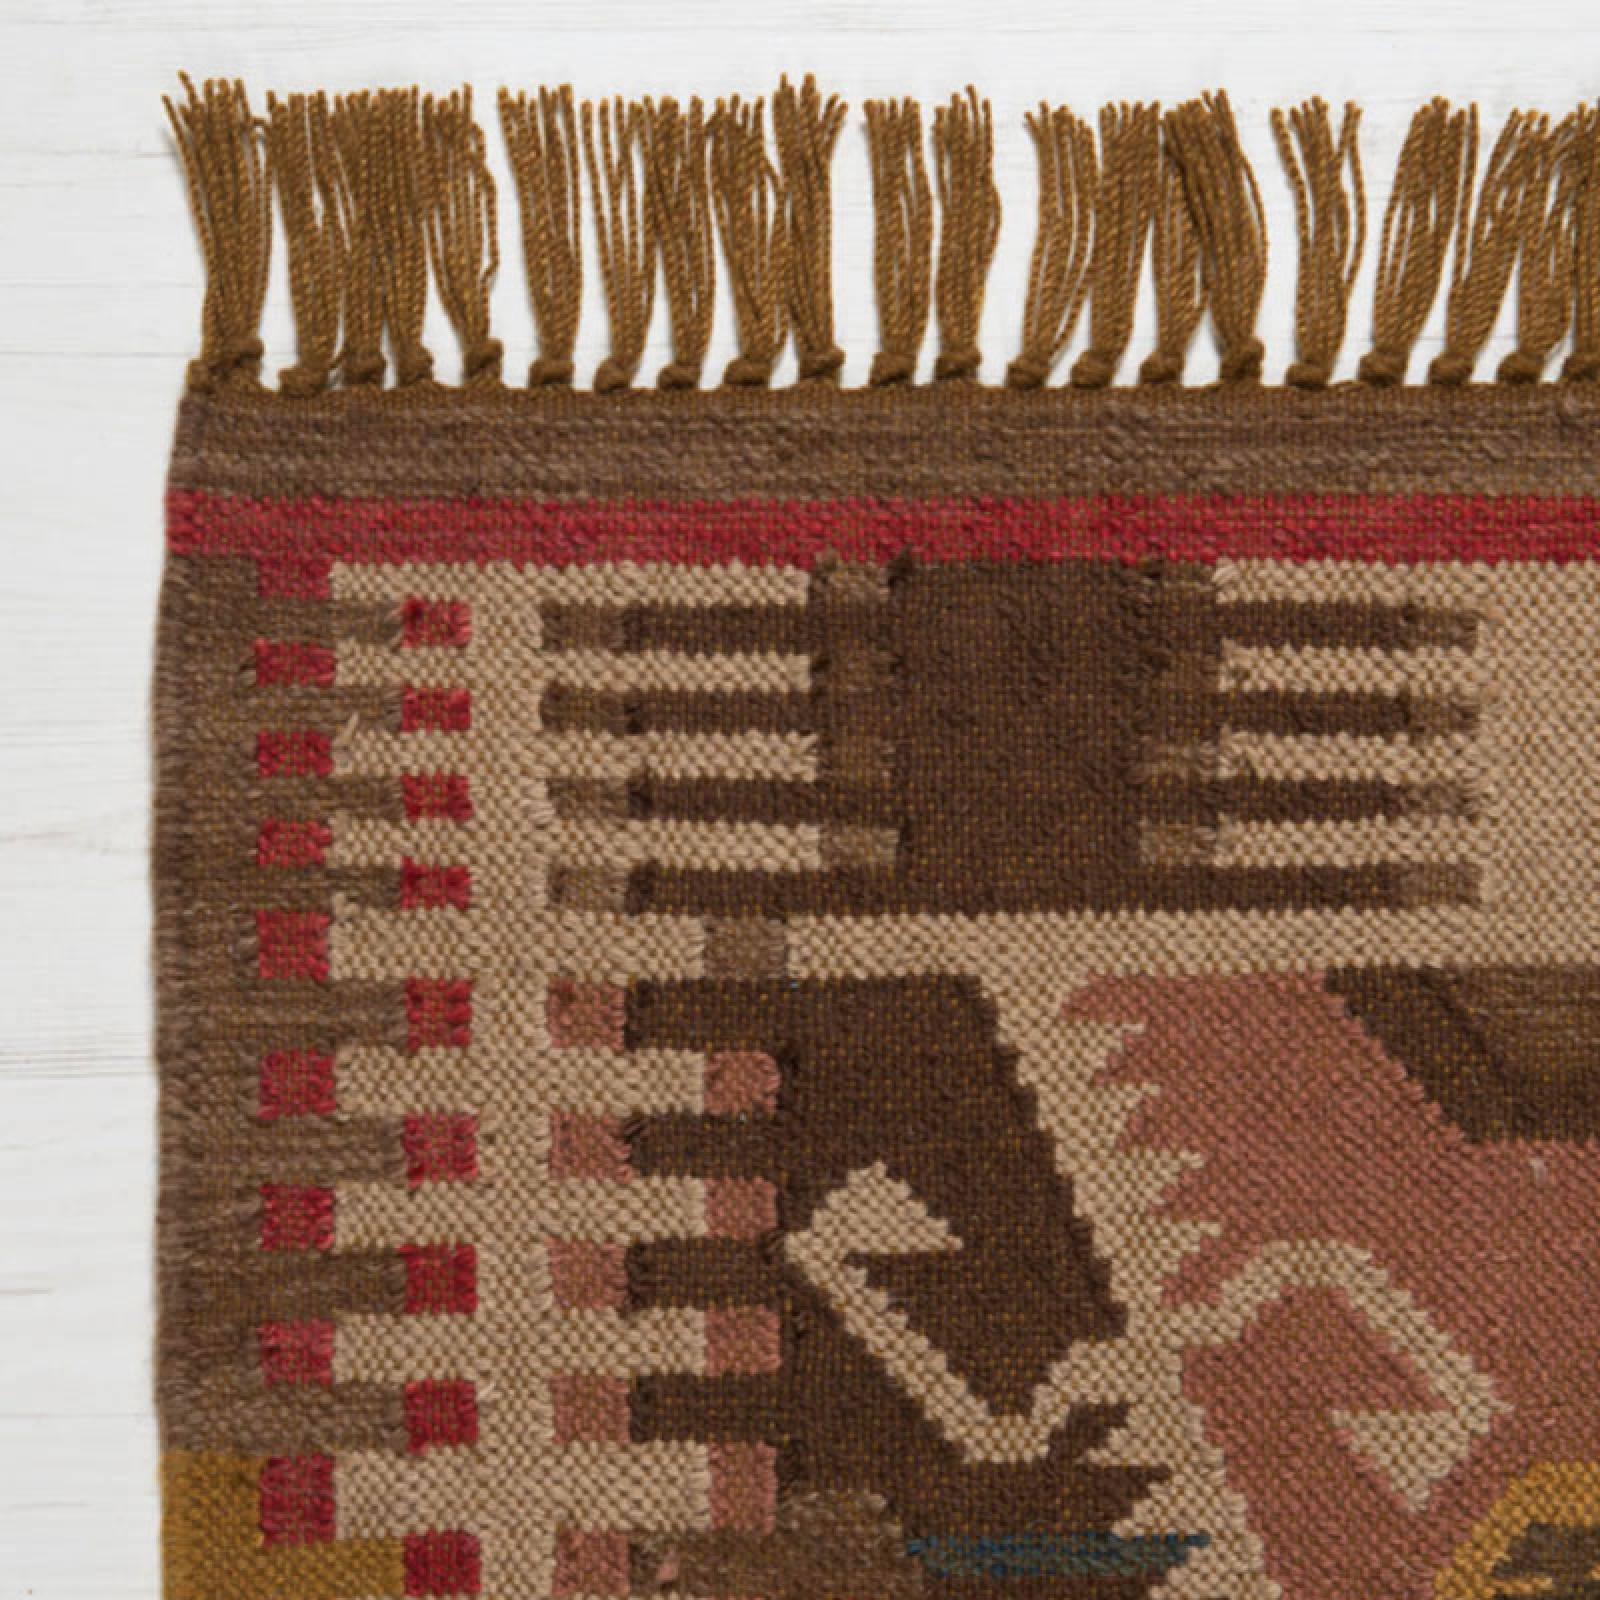 Nomad SULTAN 180x120cm Recycled Bottle Rug thumbnails